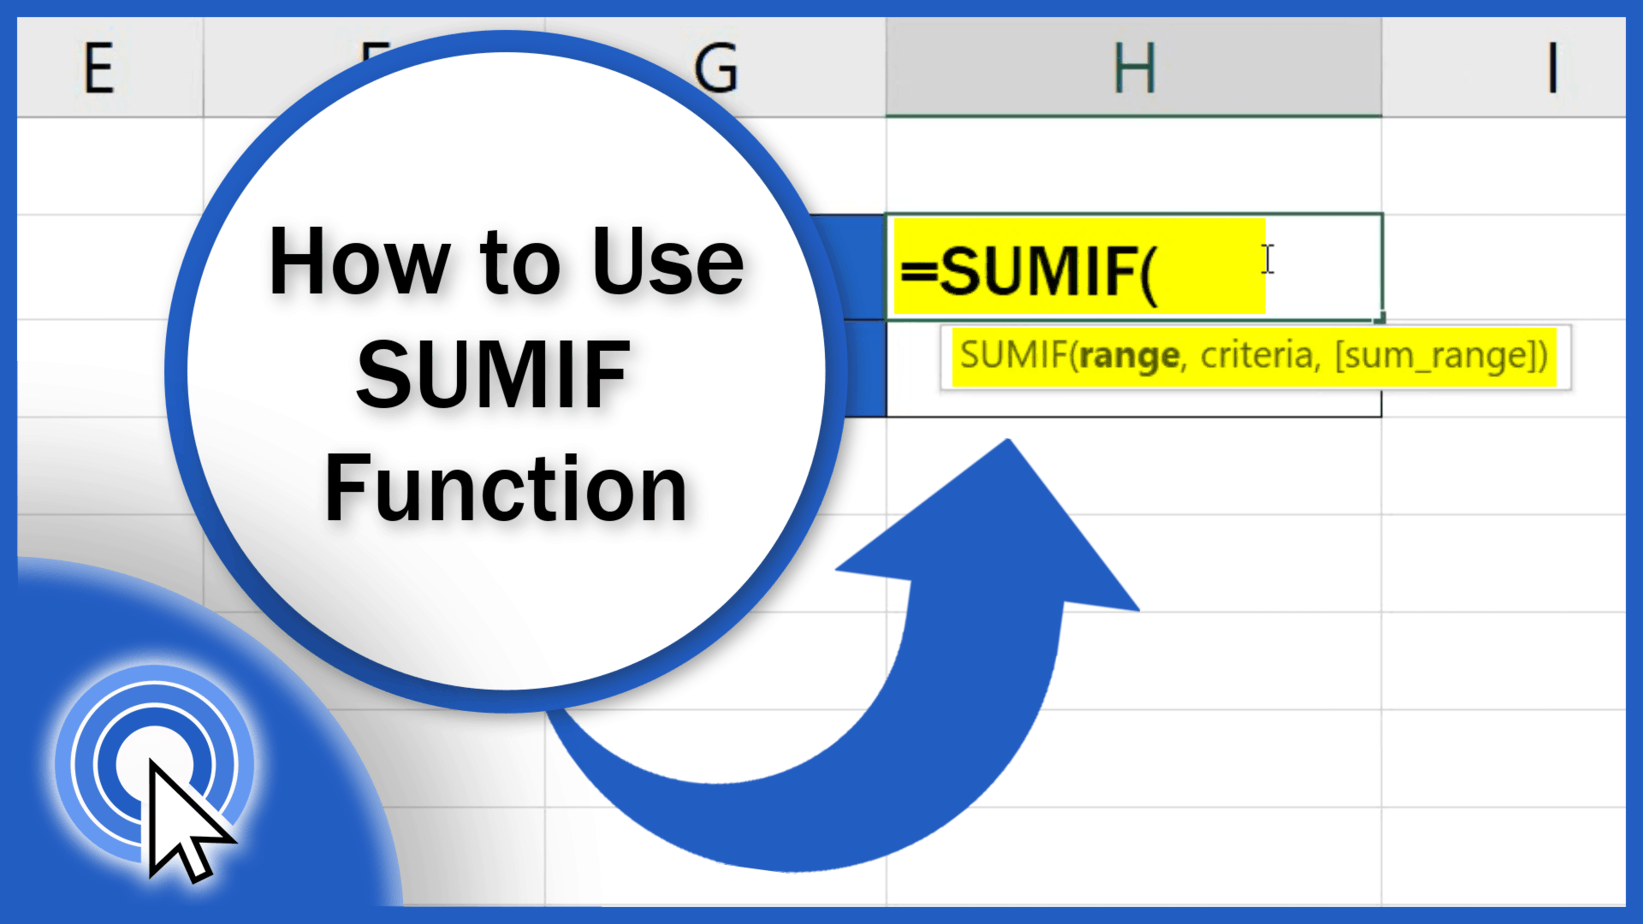 How to Use SUMIF Function in Excel